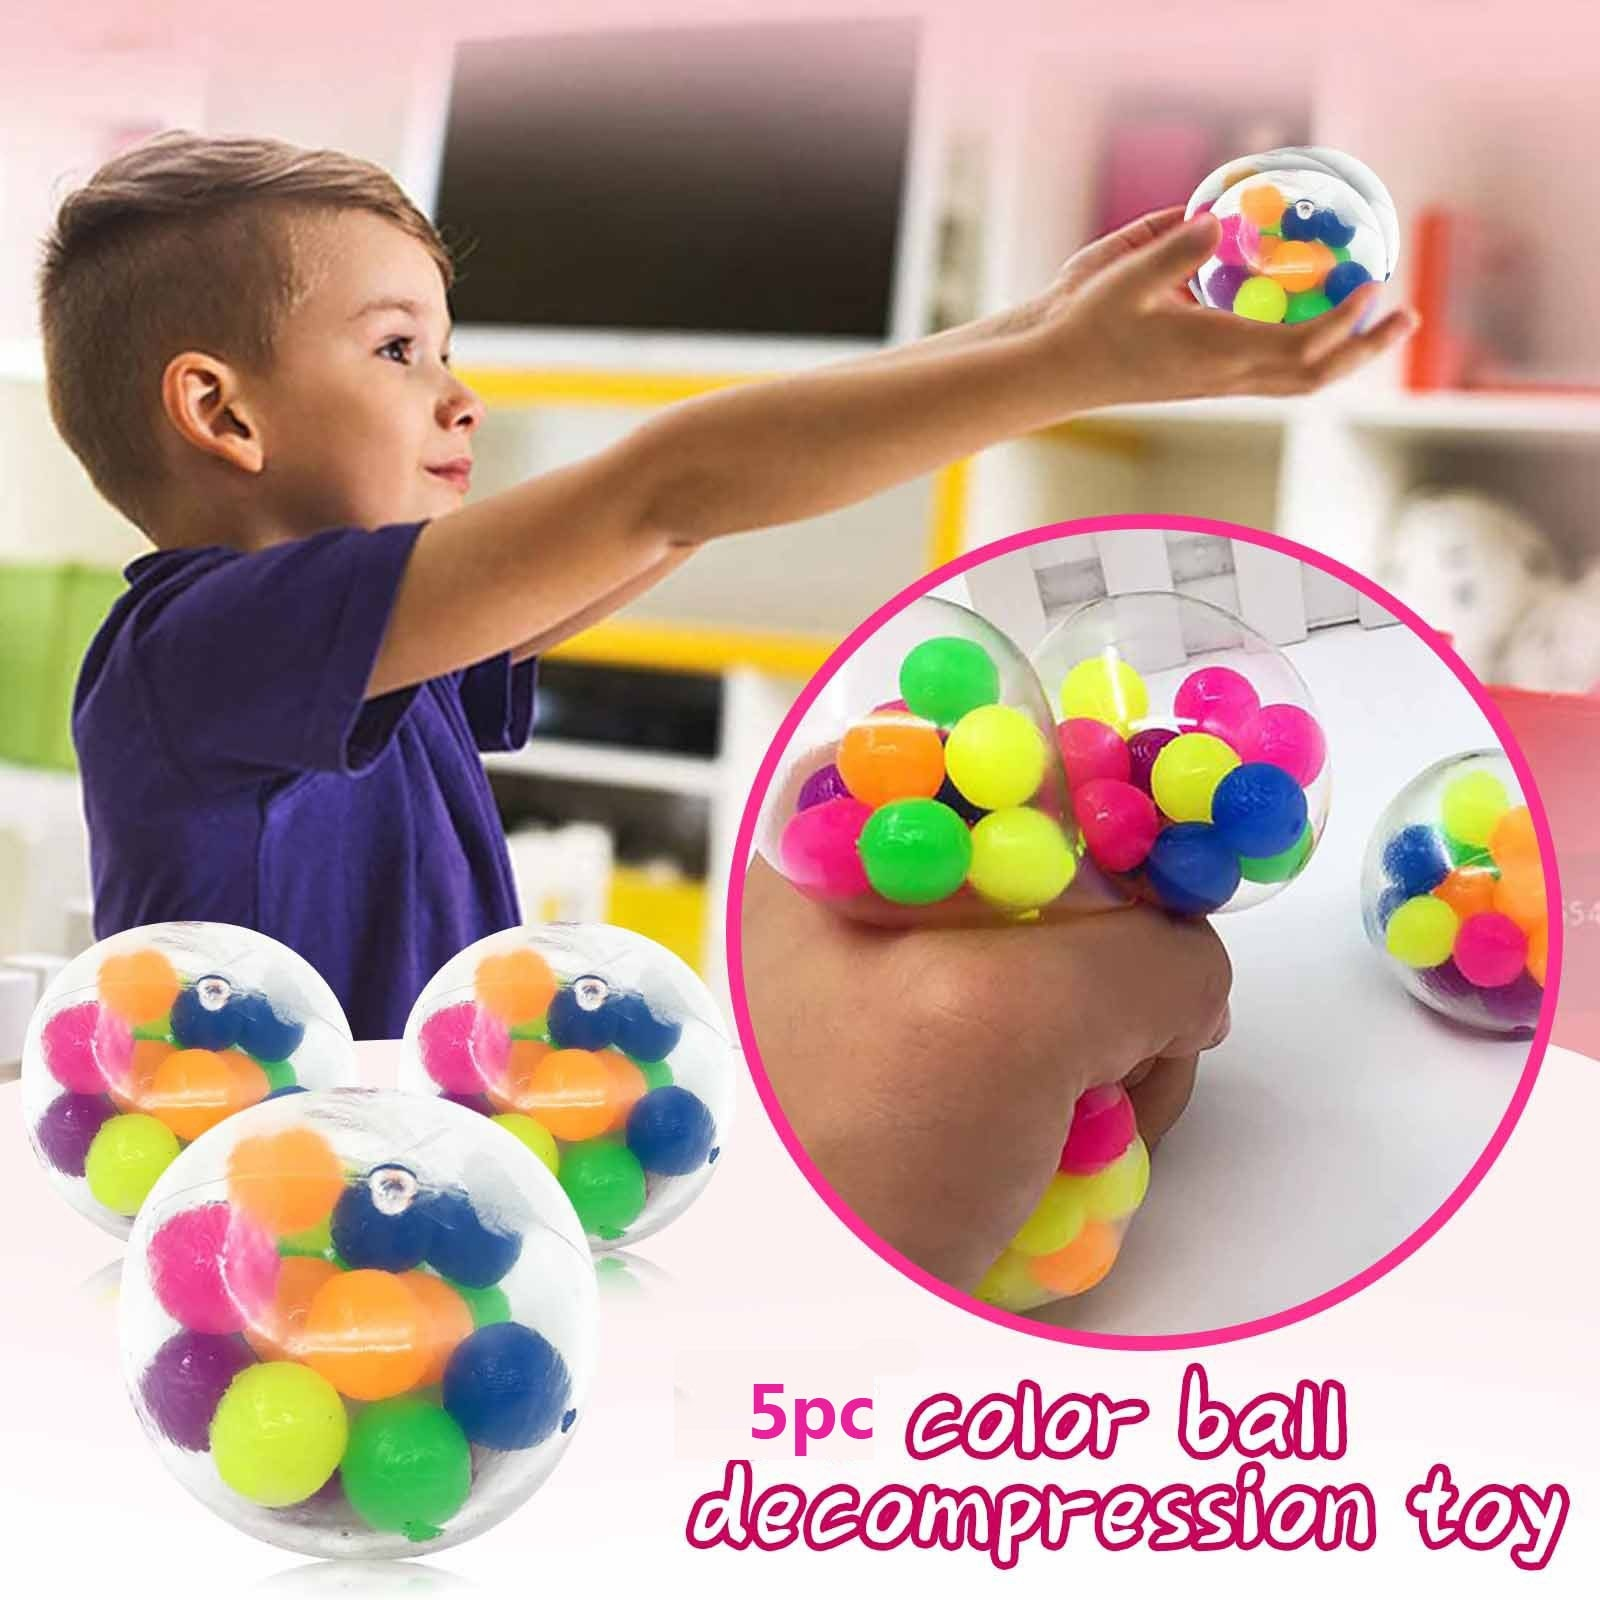 5pc Figet Toys Color Sensory Toy Office Stress Ball Pressure Ball Stress Reliever Toy Figet Toys Adult Fidget Toys Set enlarge